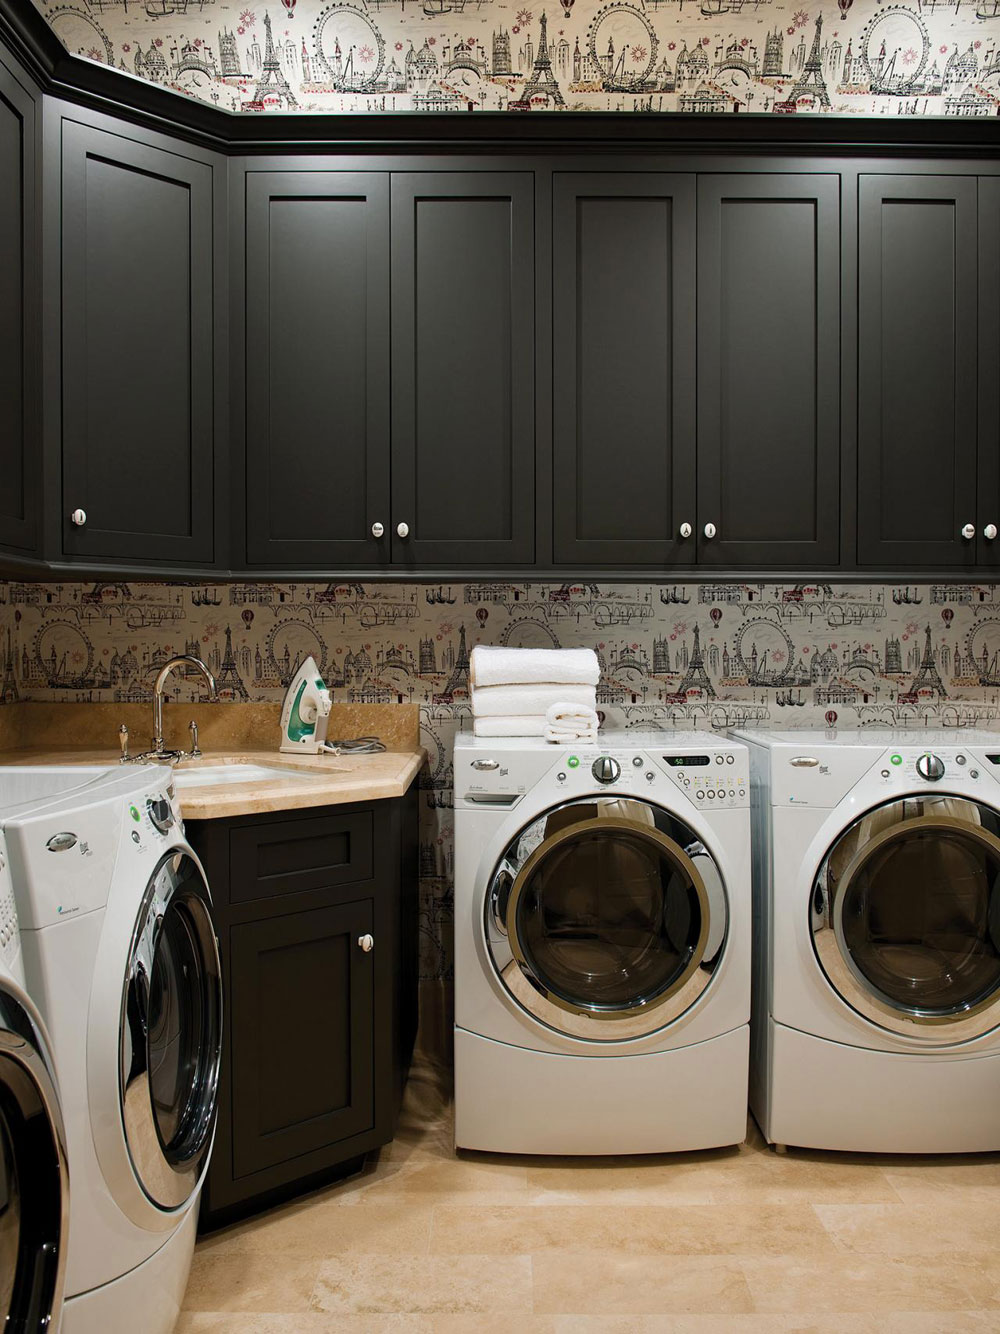 Laundry Room Ideas For A Clean House 2 Laundry Laundry Room Ideas For A